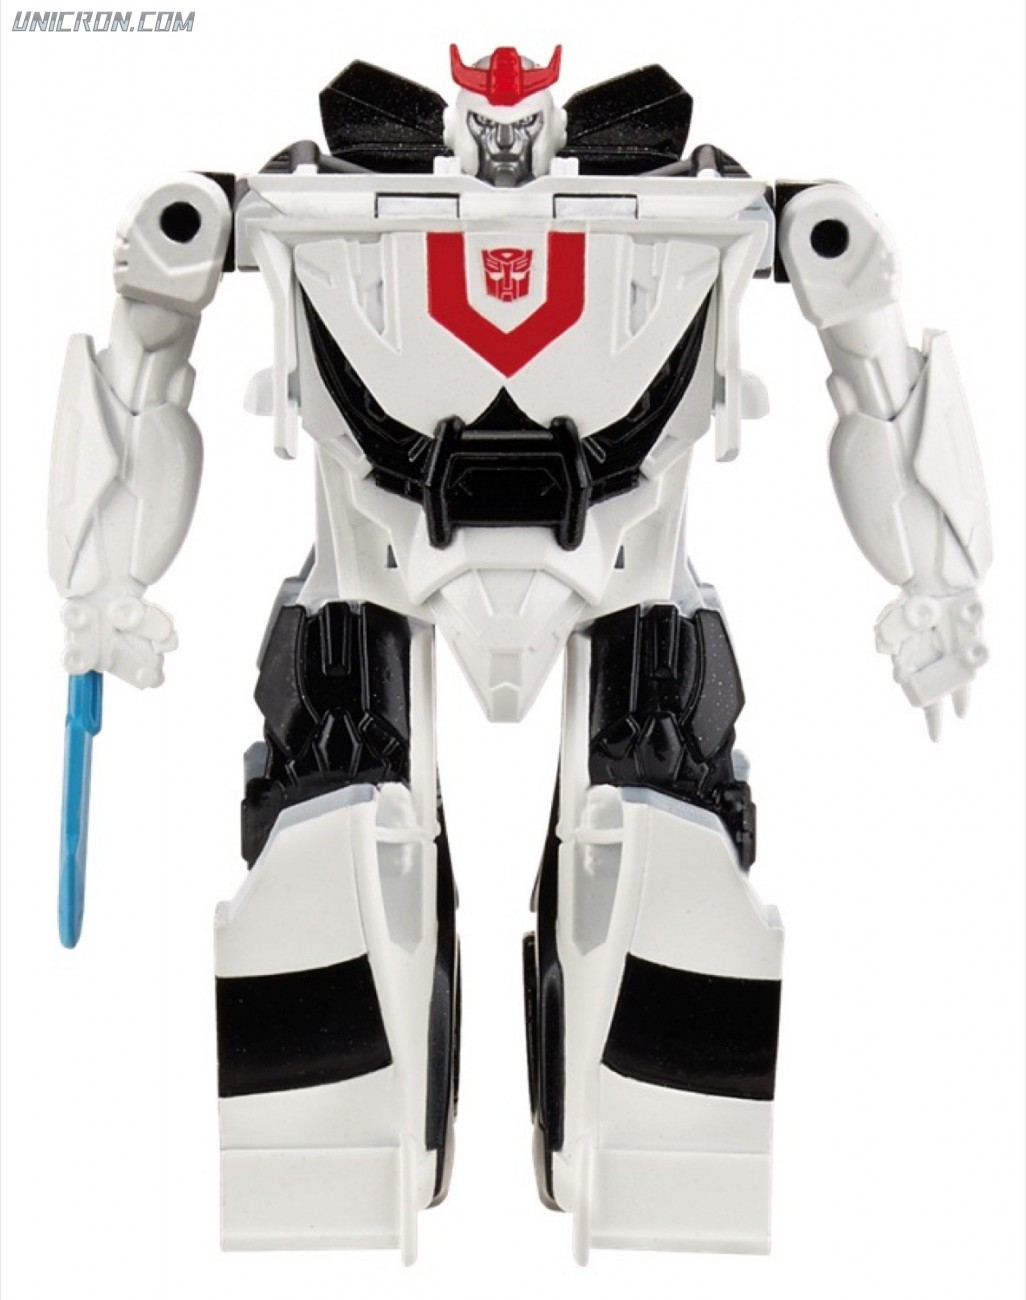 Transformers 4 Age of Extinction Prowl (1-step changer AoE) toy